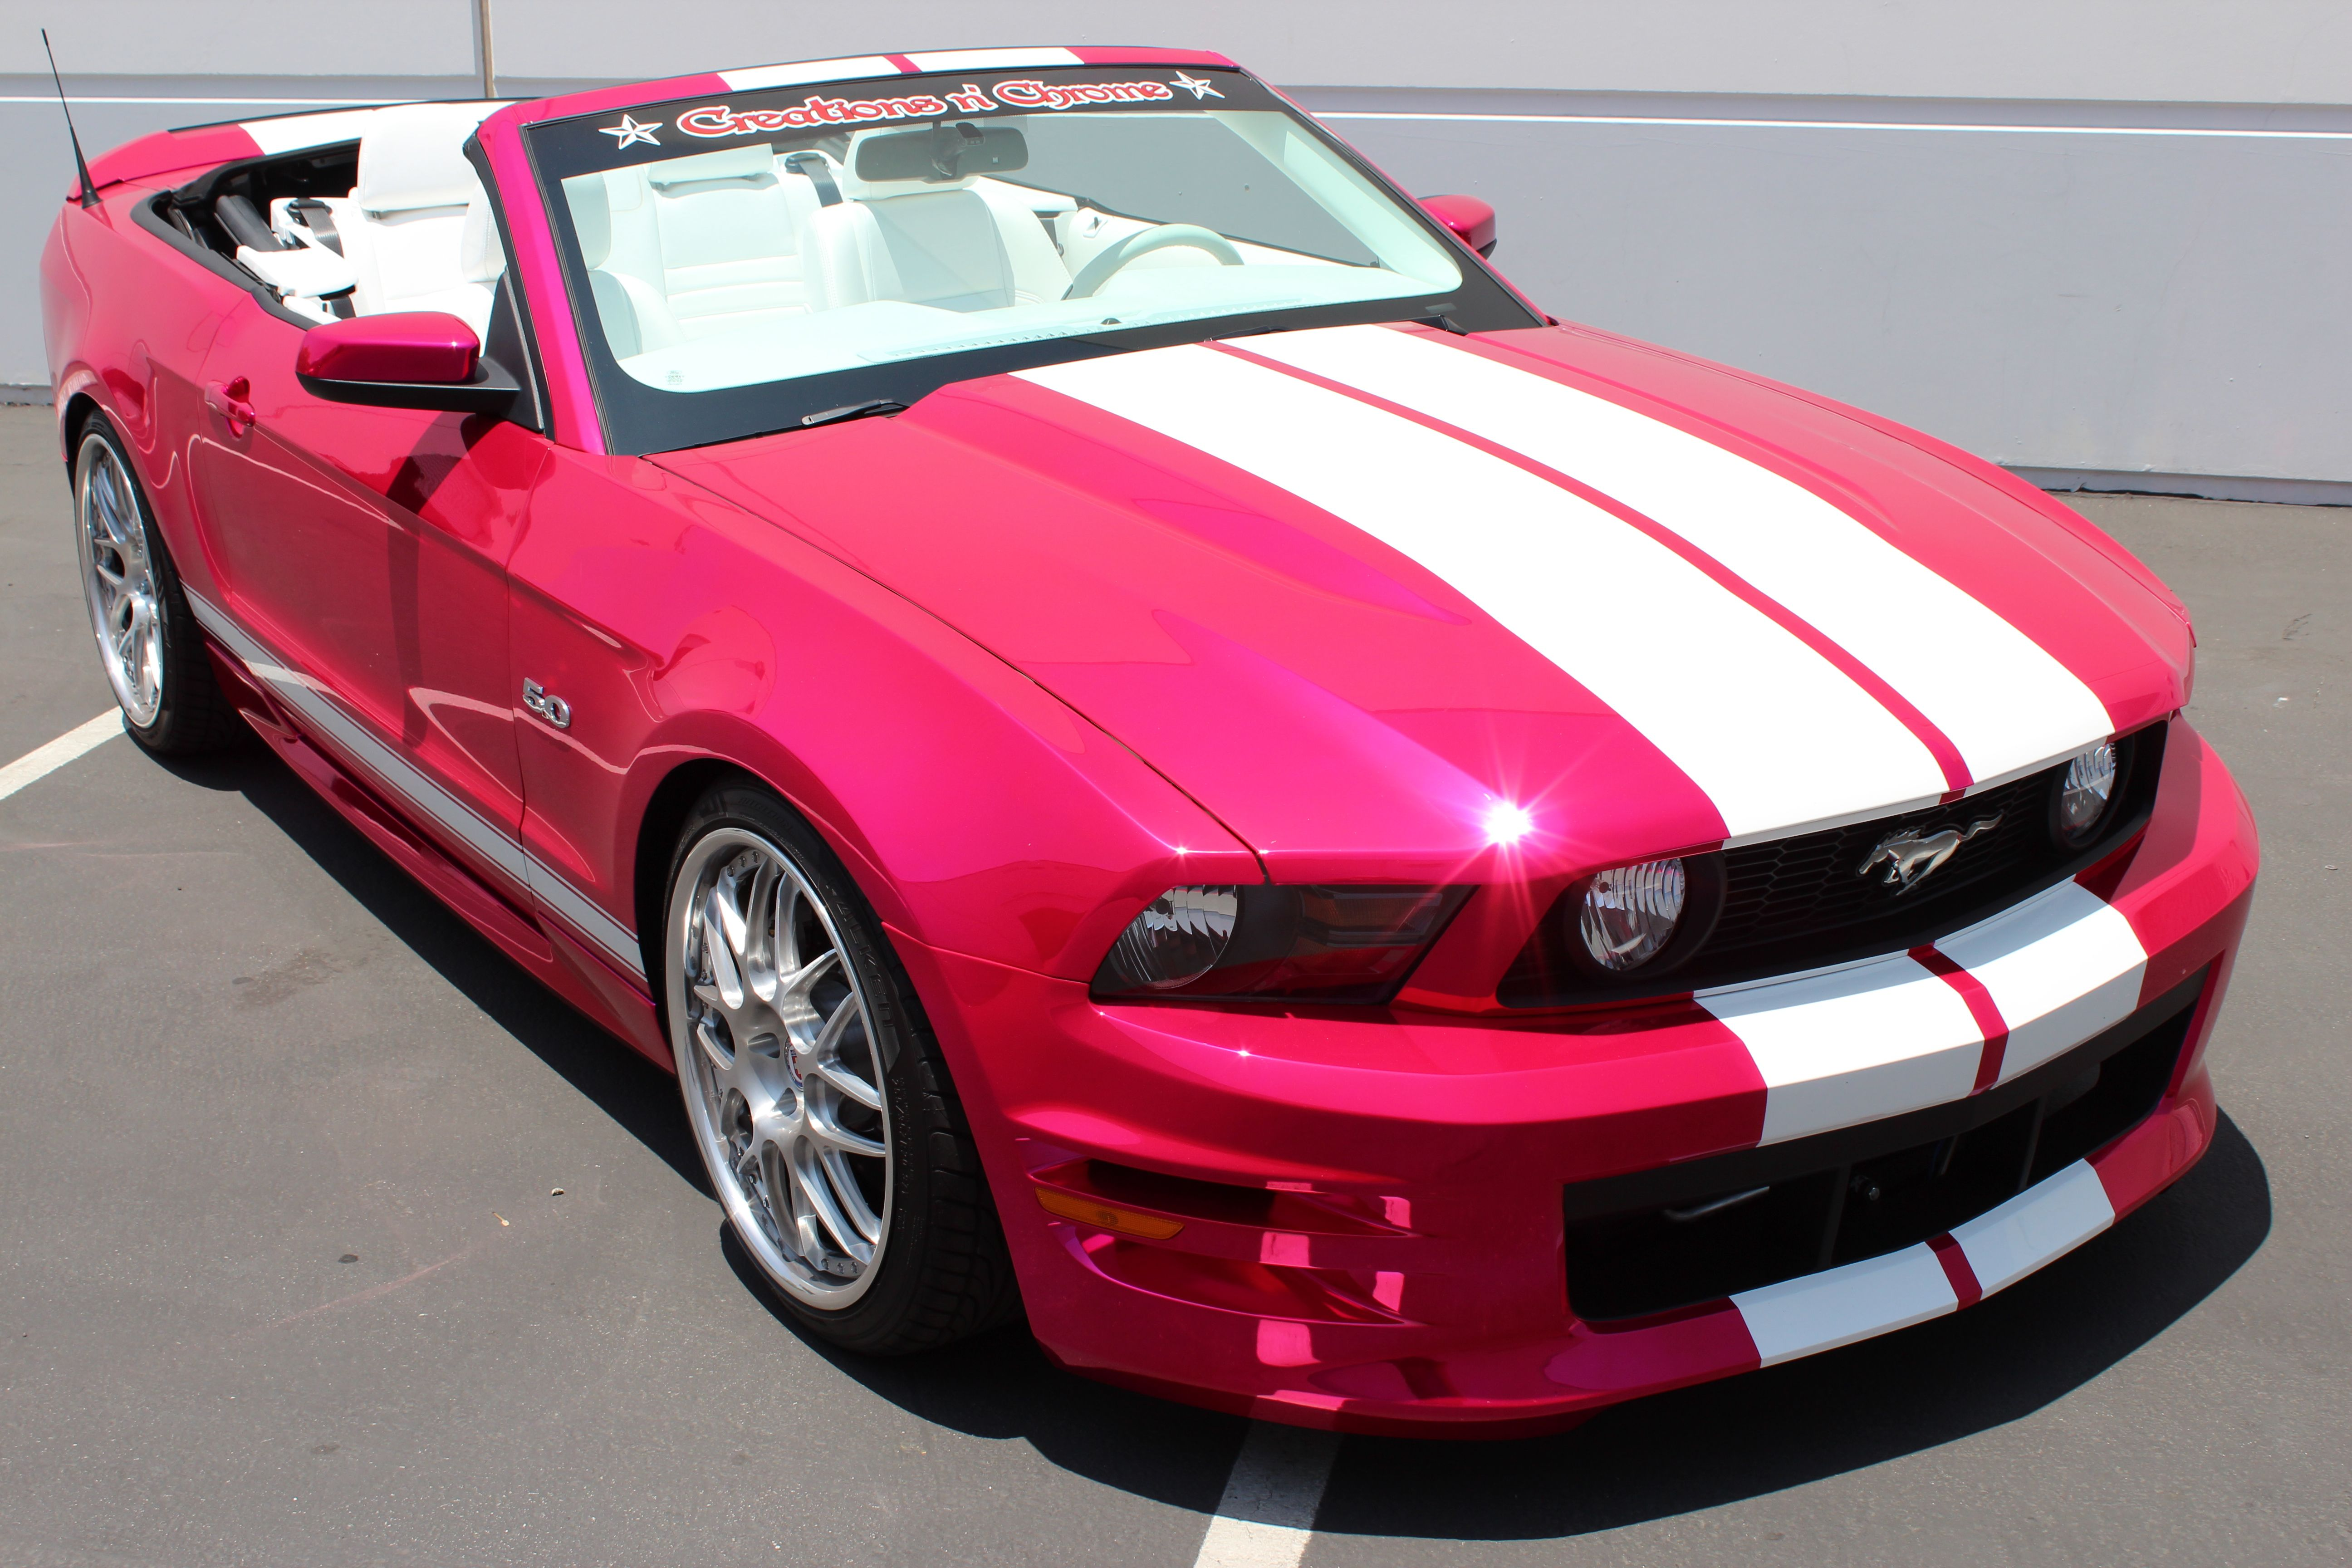 Mustang 2004 Gt >> Pink Ford Mustang 5 | 5 photos 1 car | Pinterest | Ford mustang, Ford and Cars